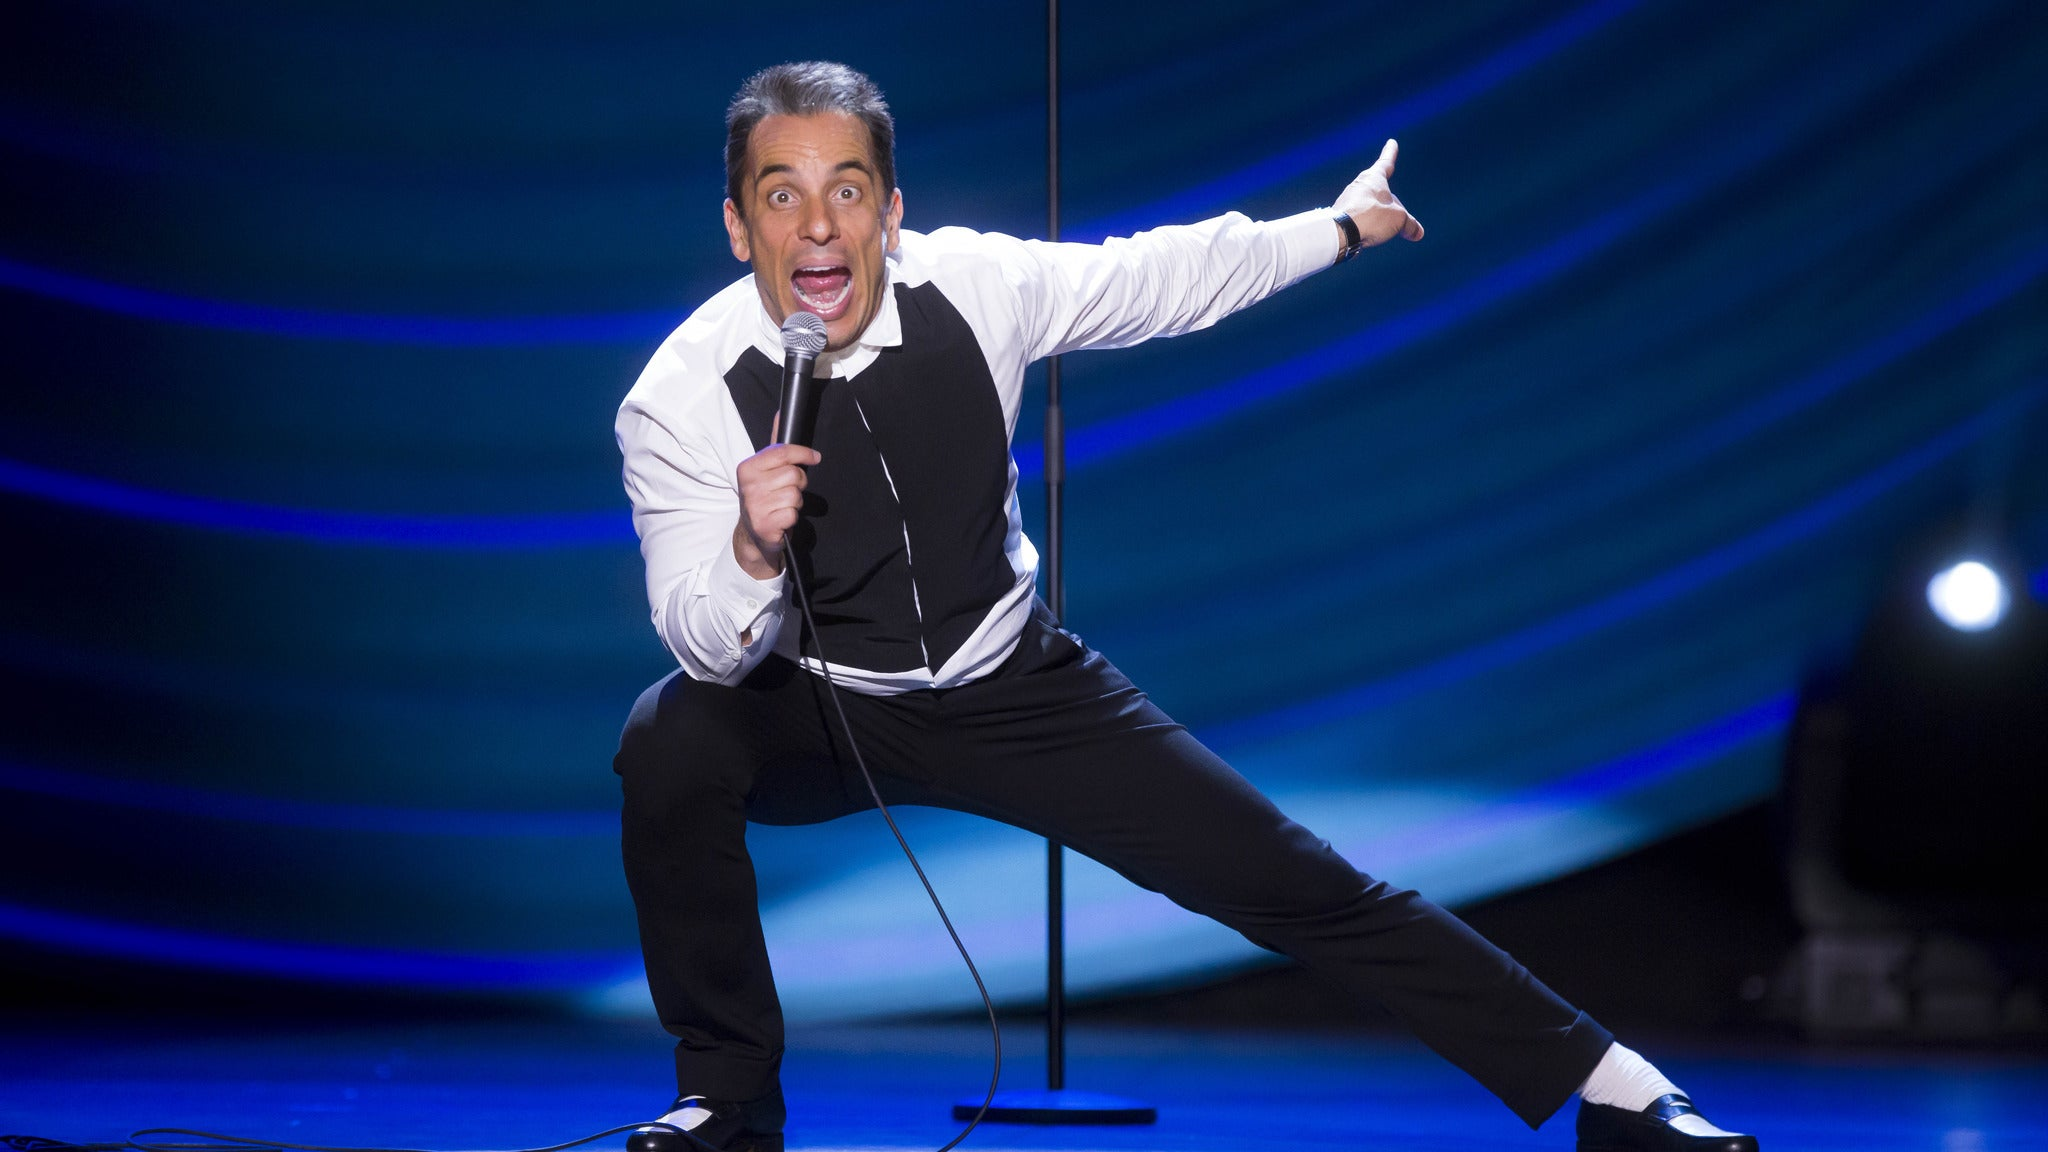 SORRY, THIS EVENT IS NO LONGER ACTIVE<br>Sebastian Maniscalco at The Chicago Theatre - Chicago, IL 60601